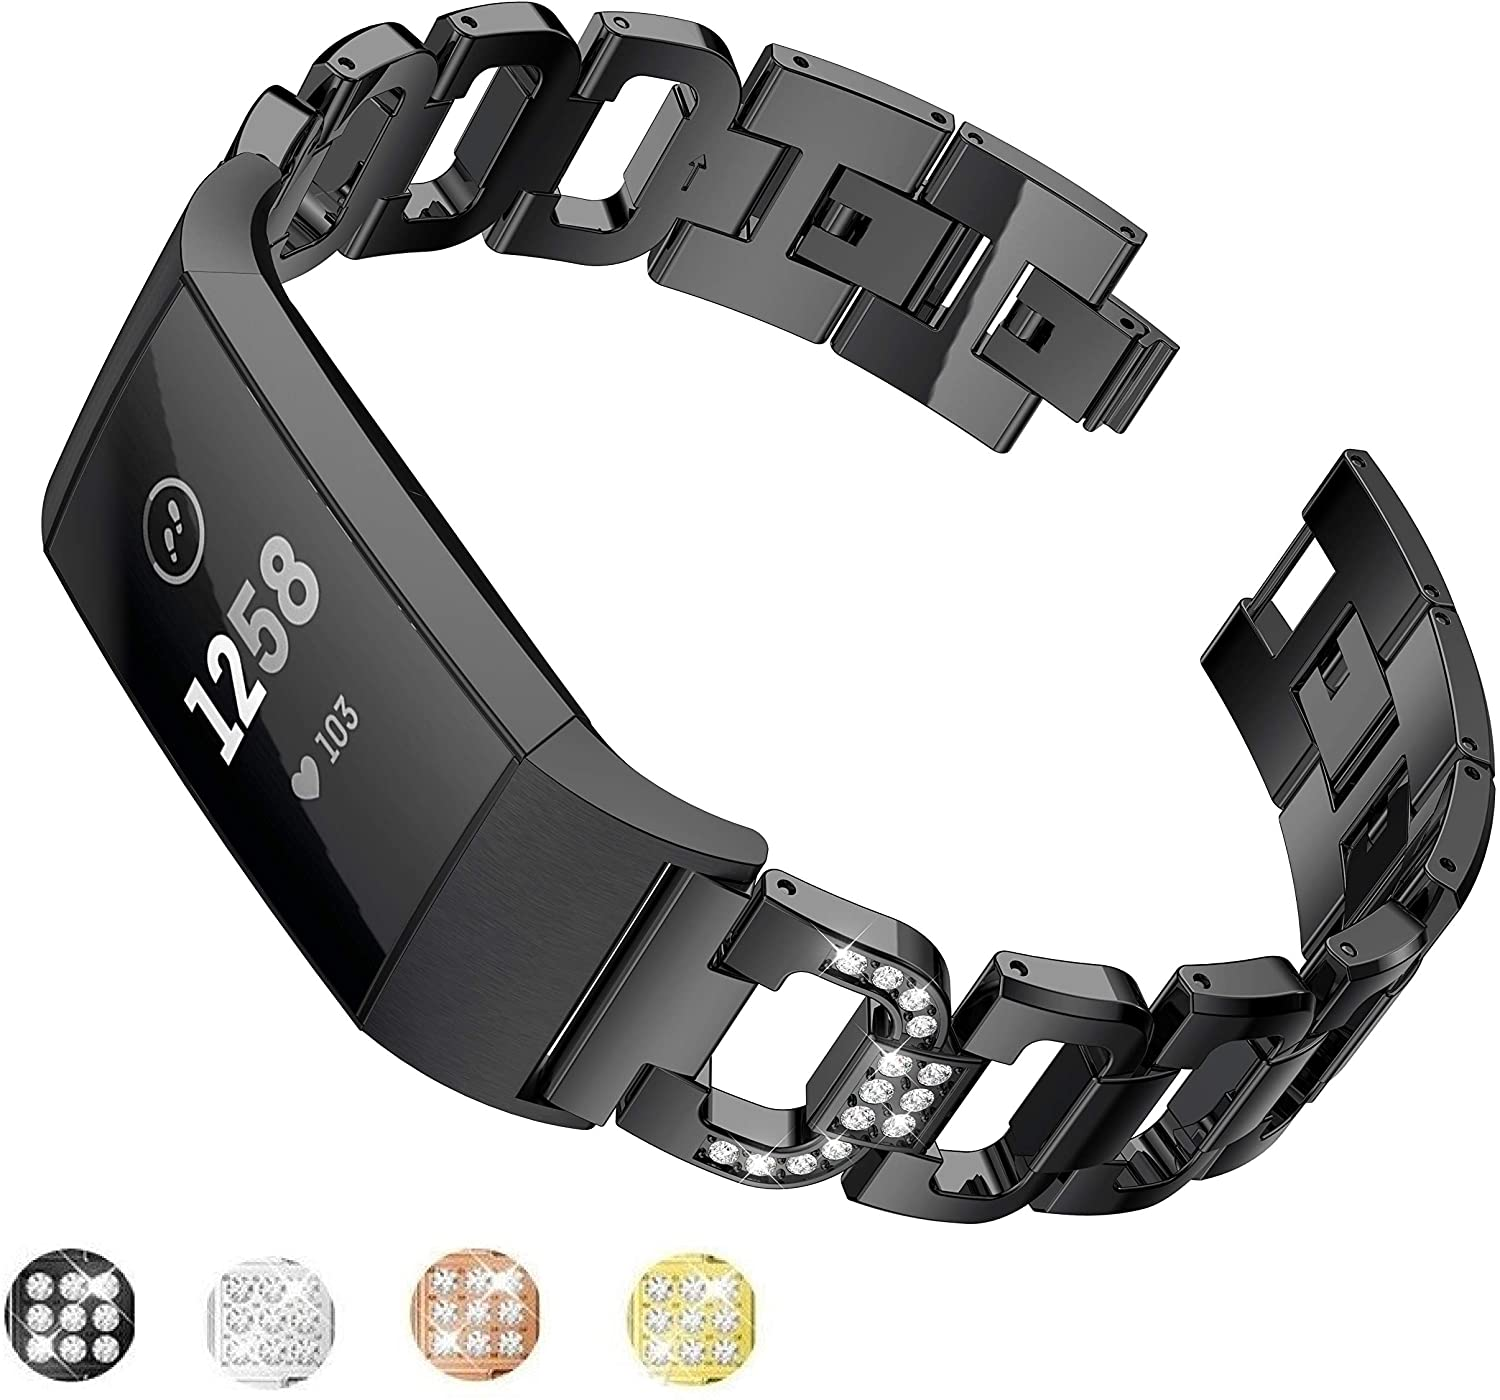 Jiarusig Compatible with Fitbit Charge 3 Bands Women, Elegant Stainless Steel Metal Replacement Bracelet Wristband X-Link Sport Smart Watch Strap + Bling Crystal Rhinestone Diamond for Fitbit Charge 3